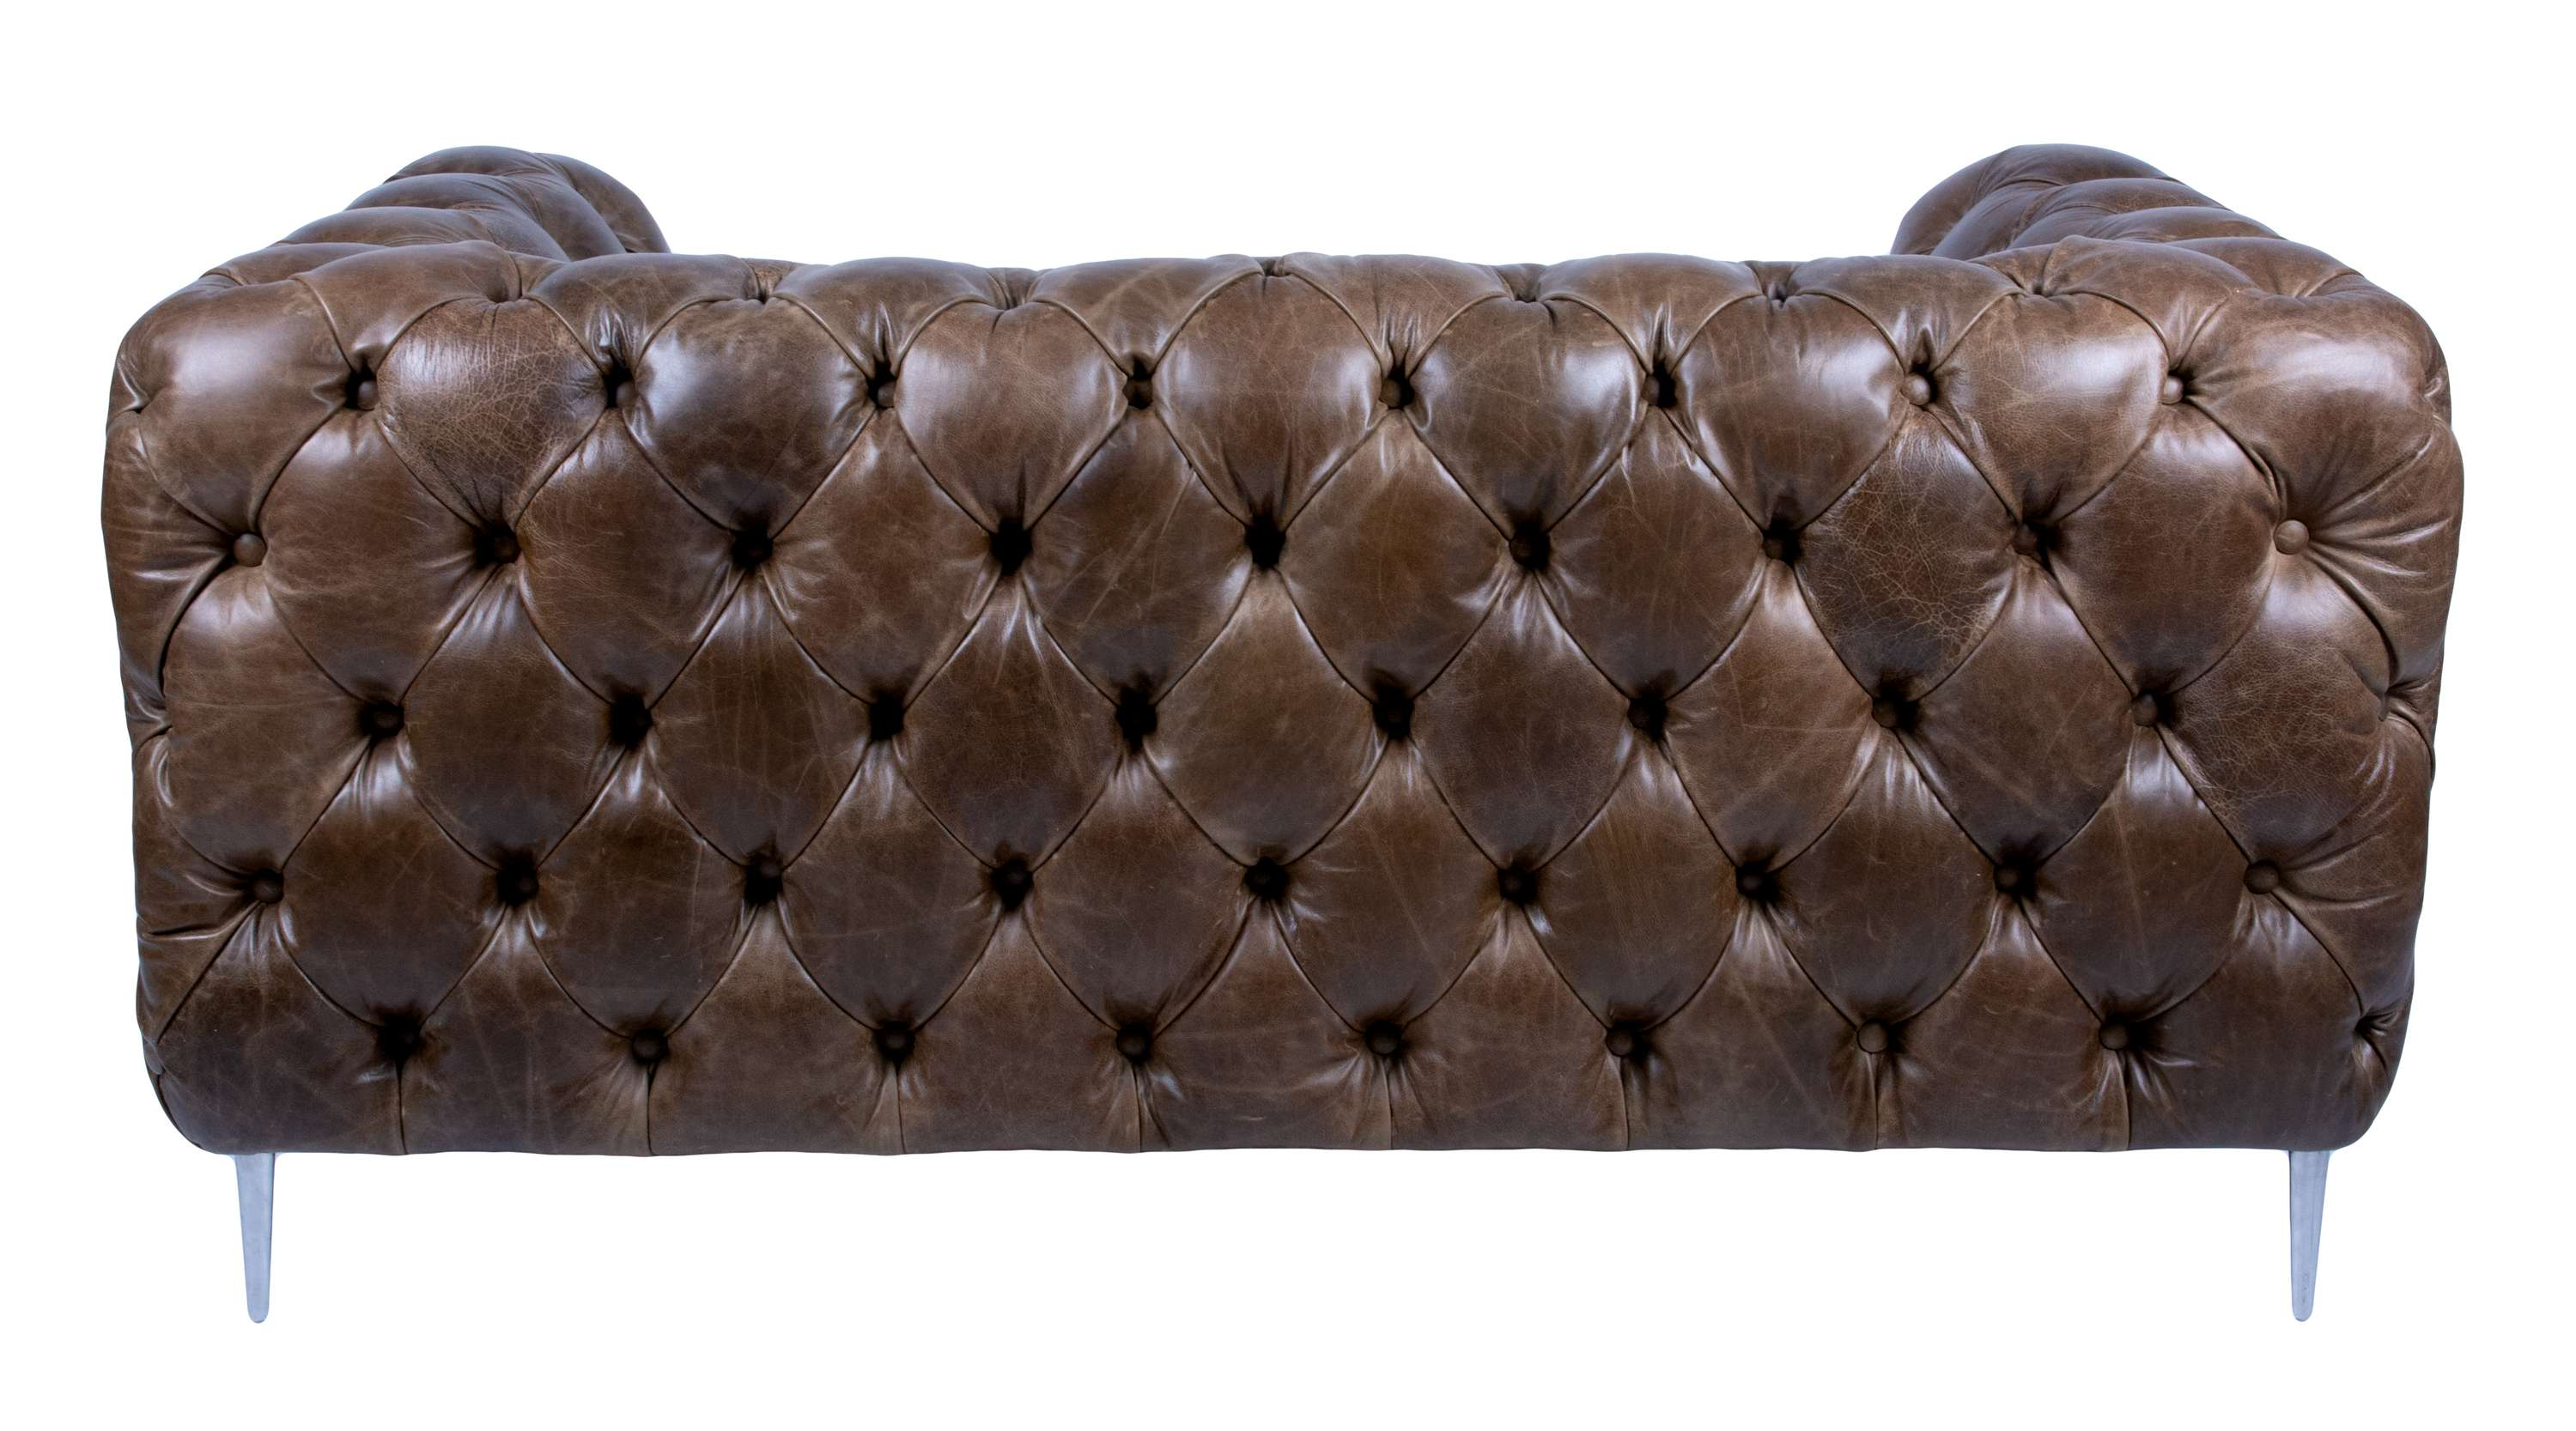 Awesome Italian Vintage Leather Sofa Product Photography Shoot Gmtry Best Dining Table And Chair Ideas Images Gmtryco